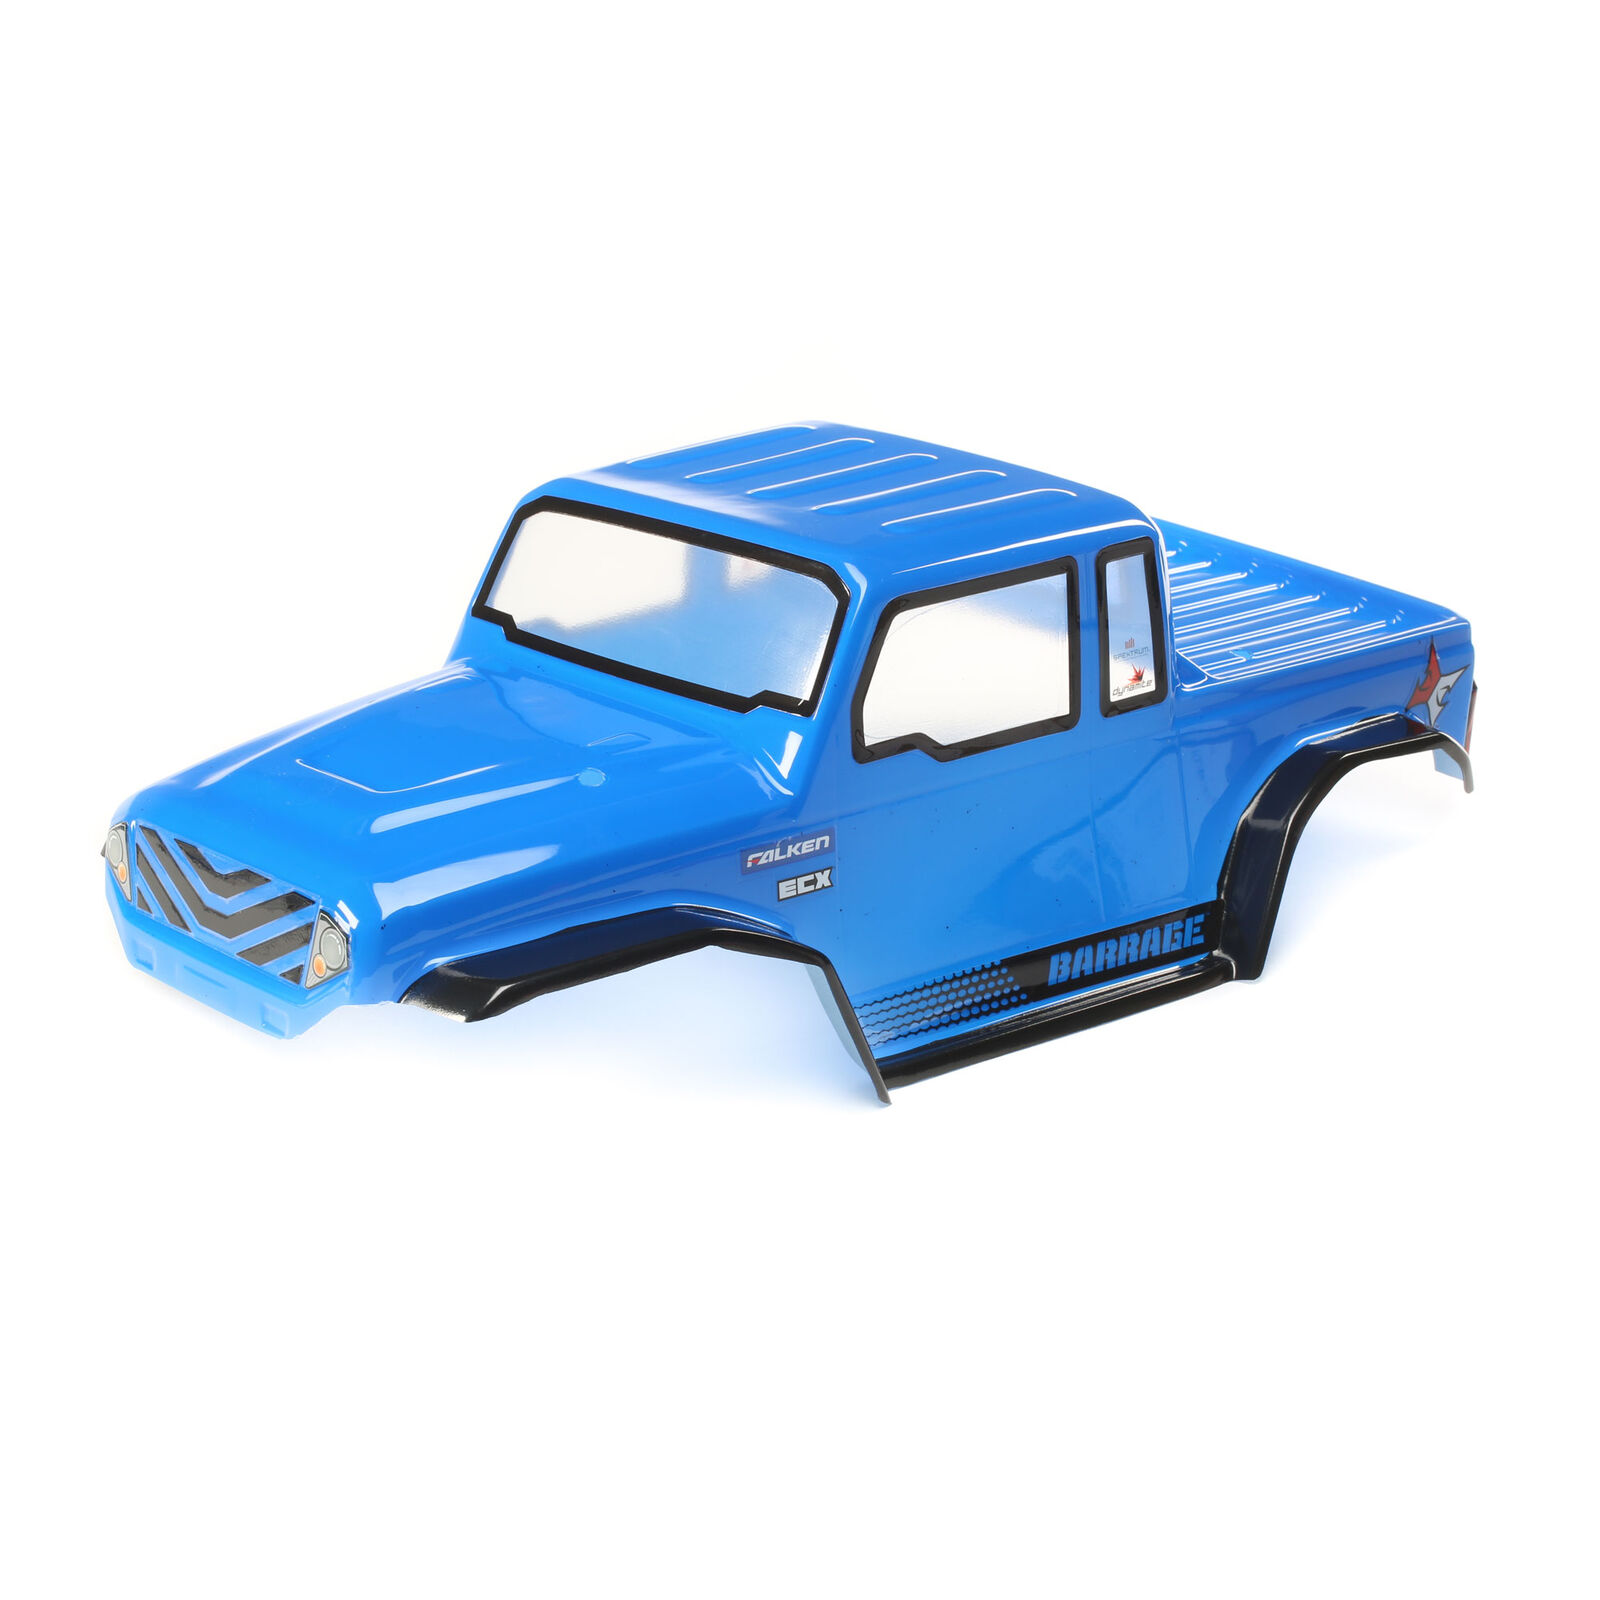 1/10 Painted Body, Blue: Barrage 2.0